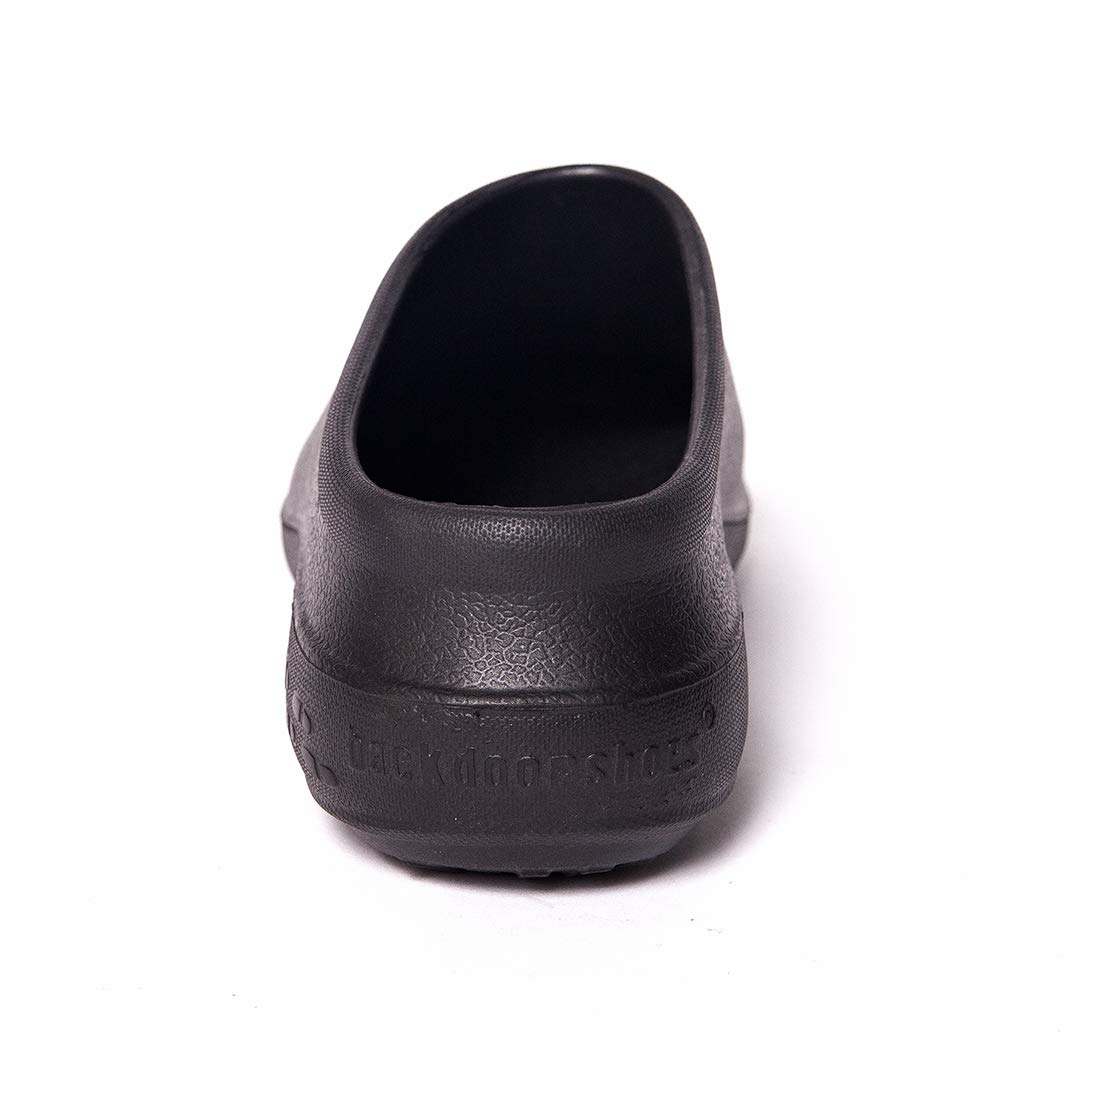 9ae95acf9263 Backdoorshoes® Mens Comfortable Slip On Garden Clogs Shoes Christmas ...